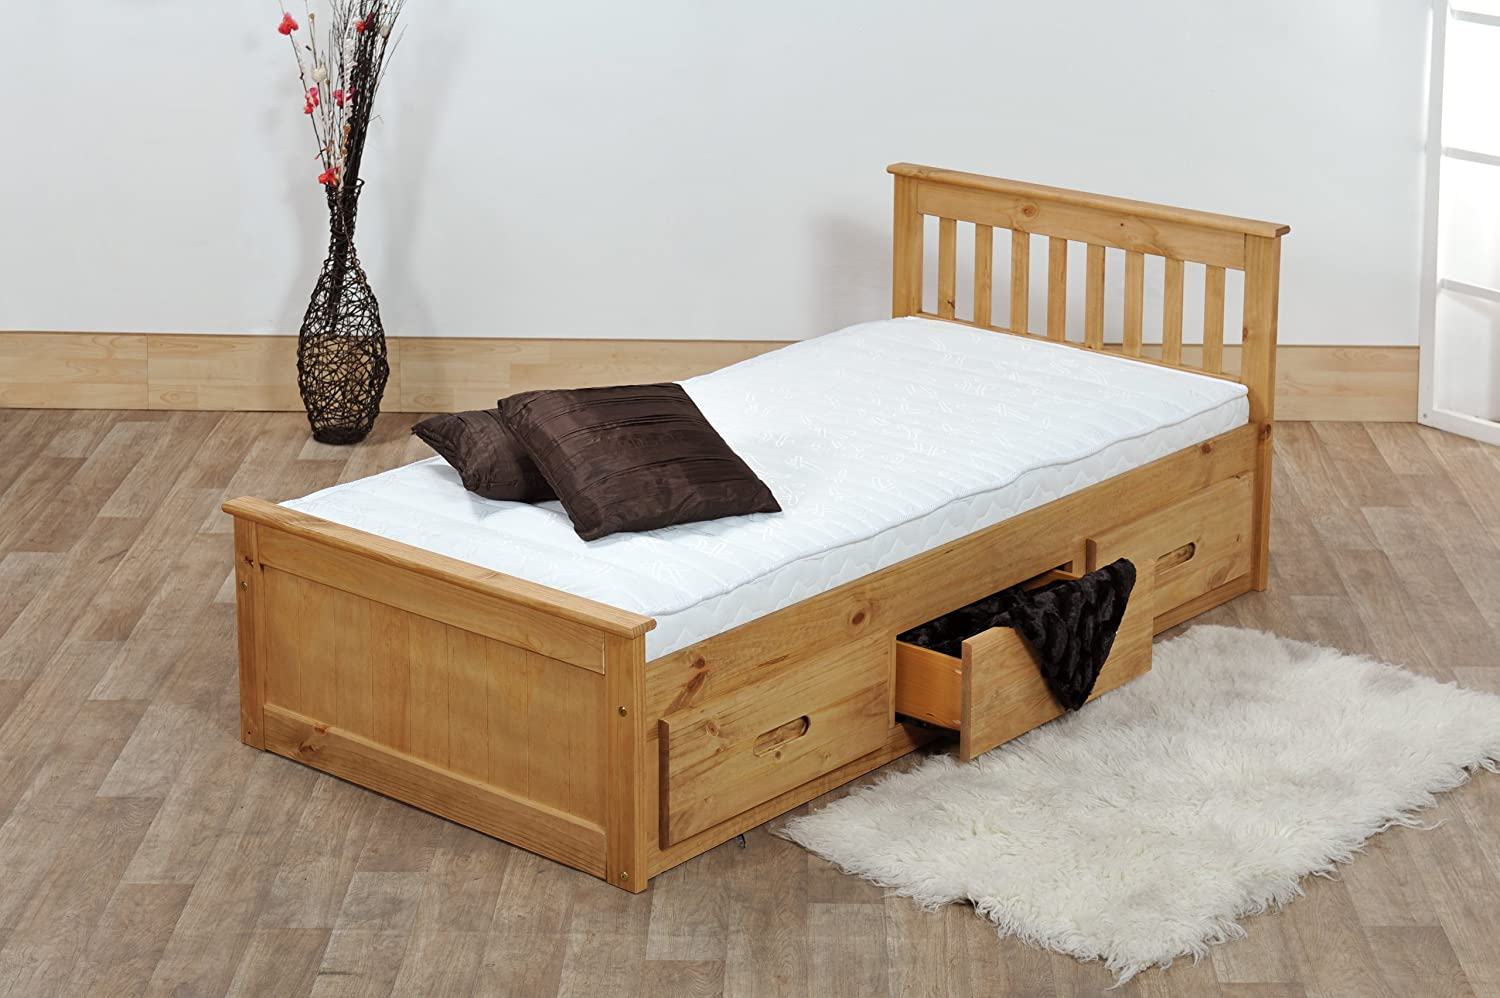 Nice Single Bed With Storage Part - 12: 3ft Single Captain Cabin Storage Solid Pine Wooden Bed Bedframe - Waxed  Pine Finish (Made From High Quality Brazilian Sustainable Pine):  Amazon.co.uk: ...